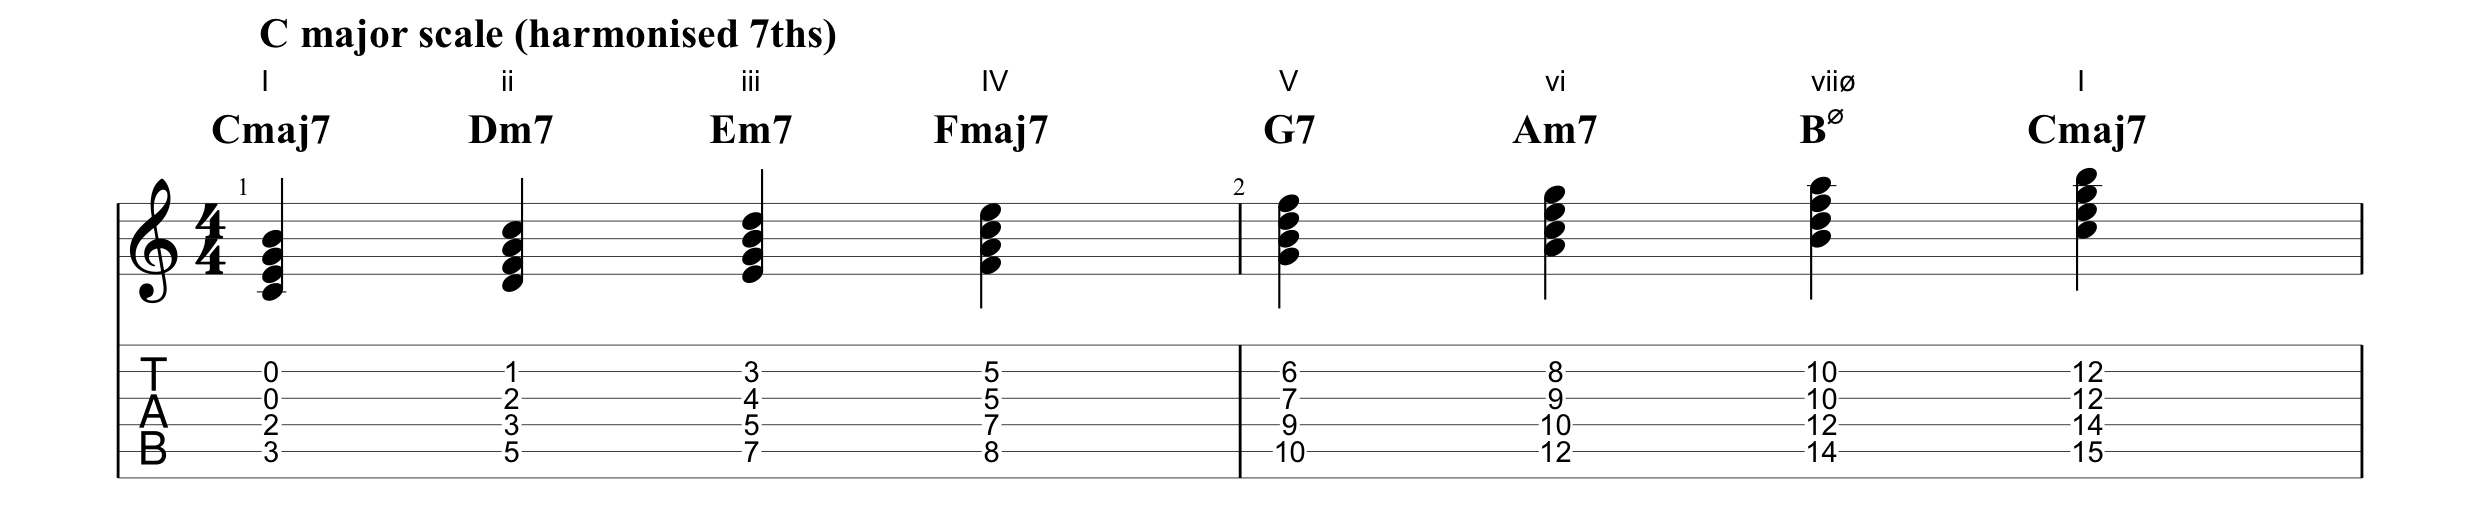 C major scale harmonised 7th.png